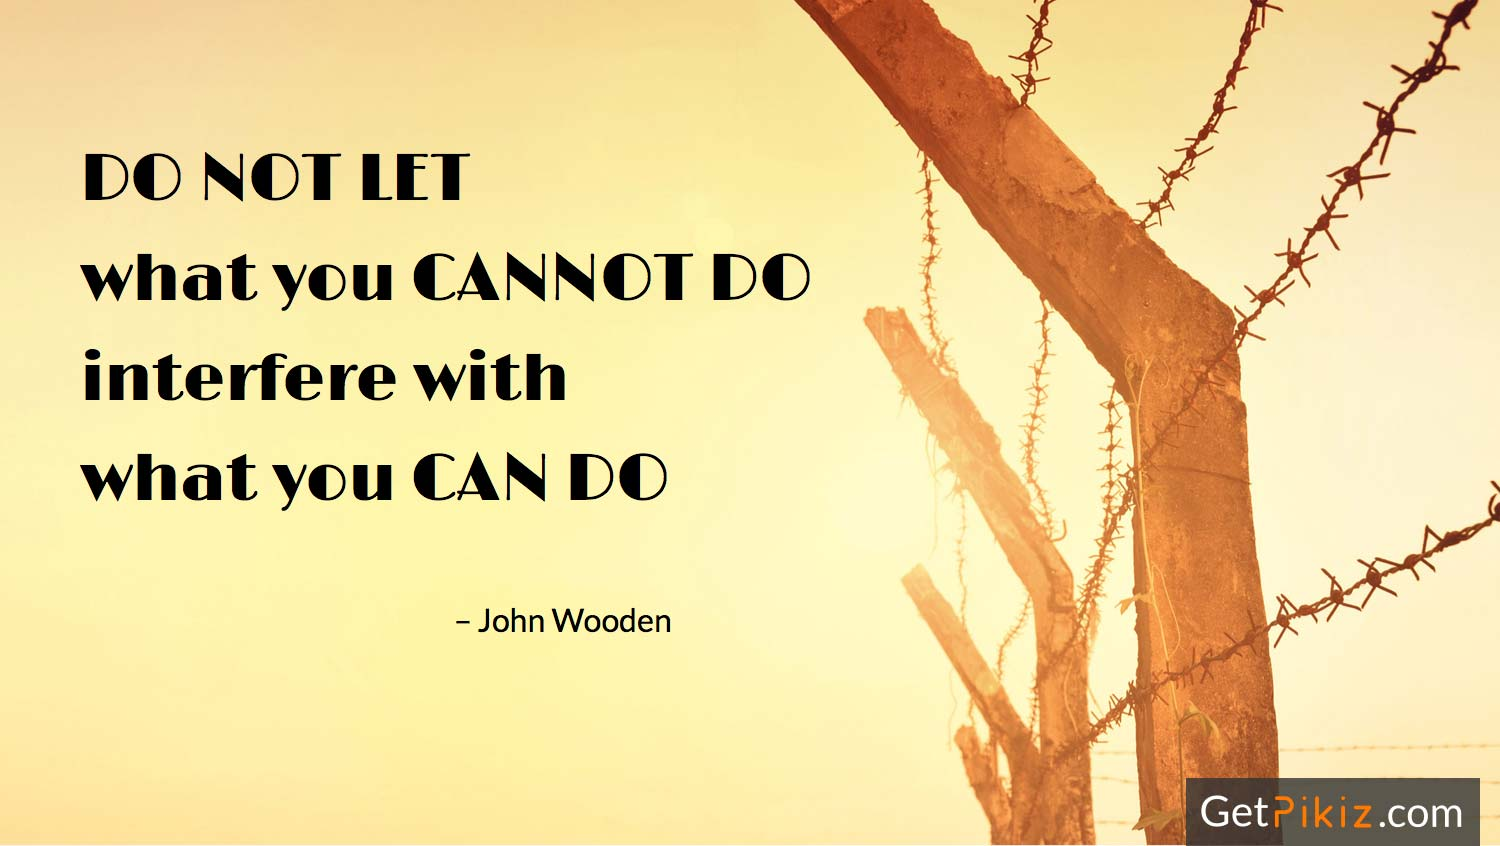 Do not let what you cannot do interfere with what you can do. – John Wooden